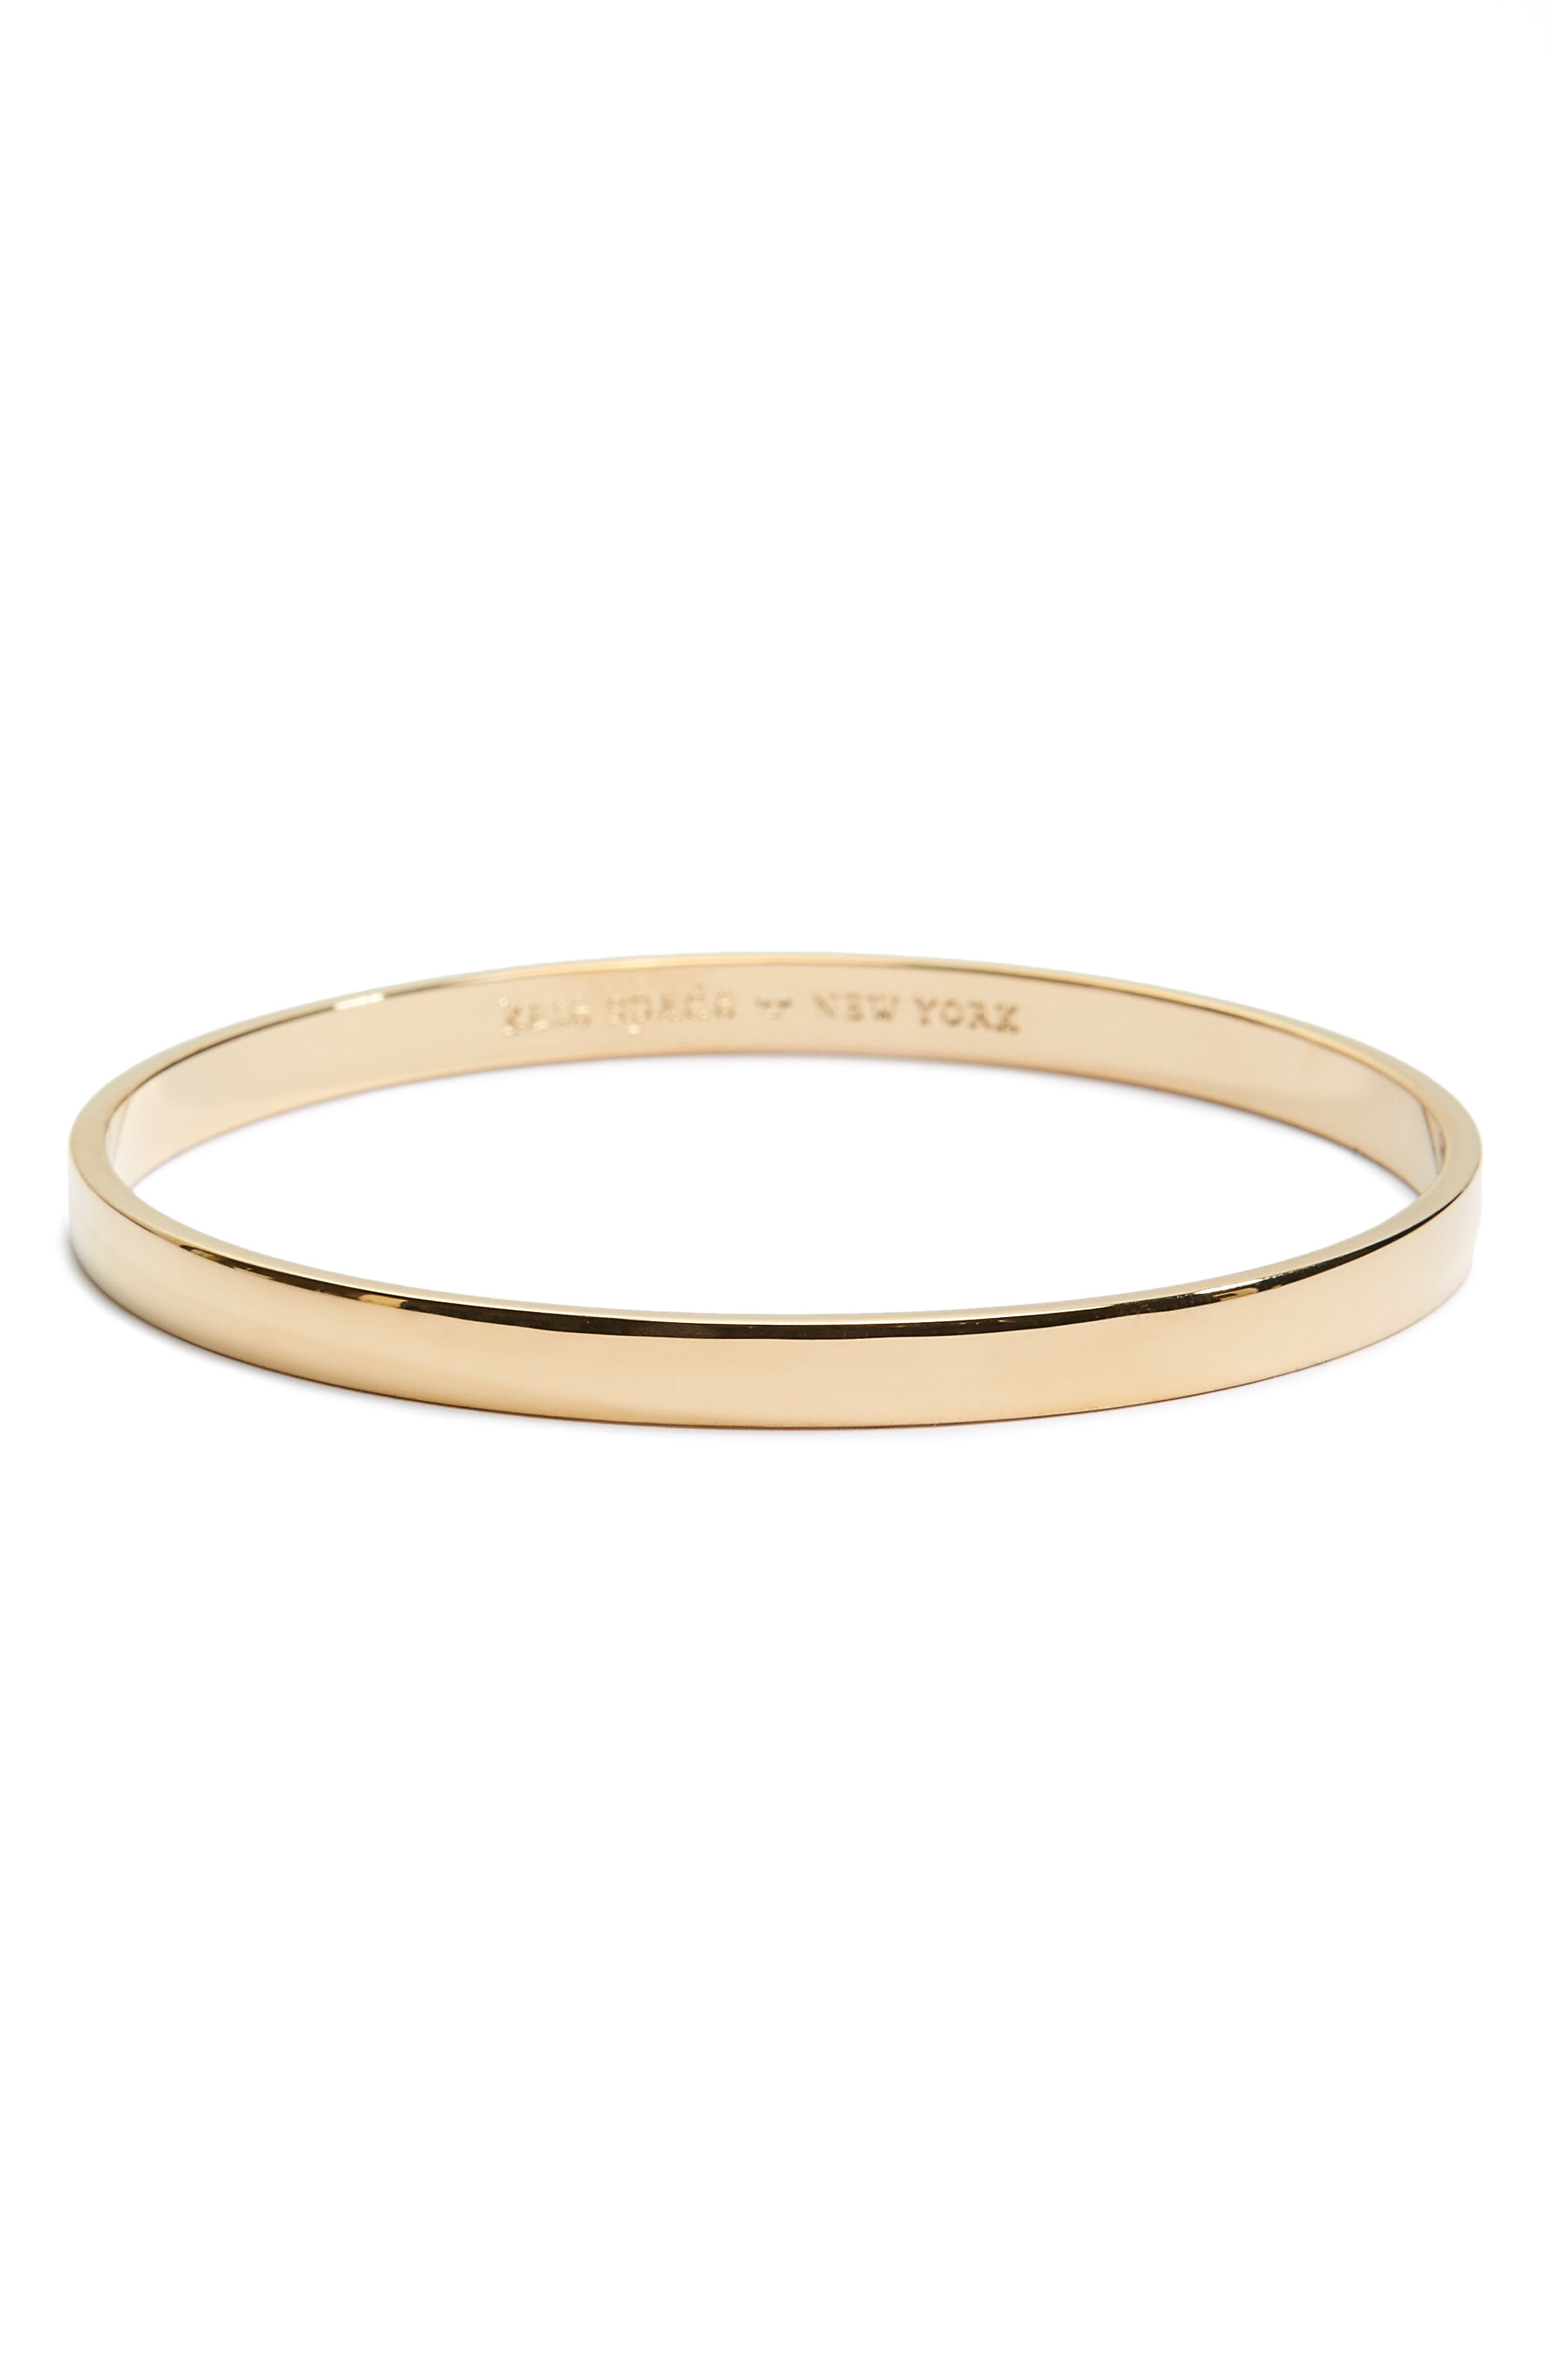 idiom - heart of gold bangle, Main, color, GOLD